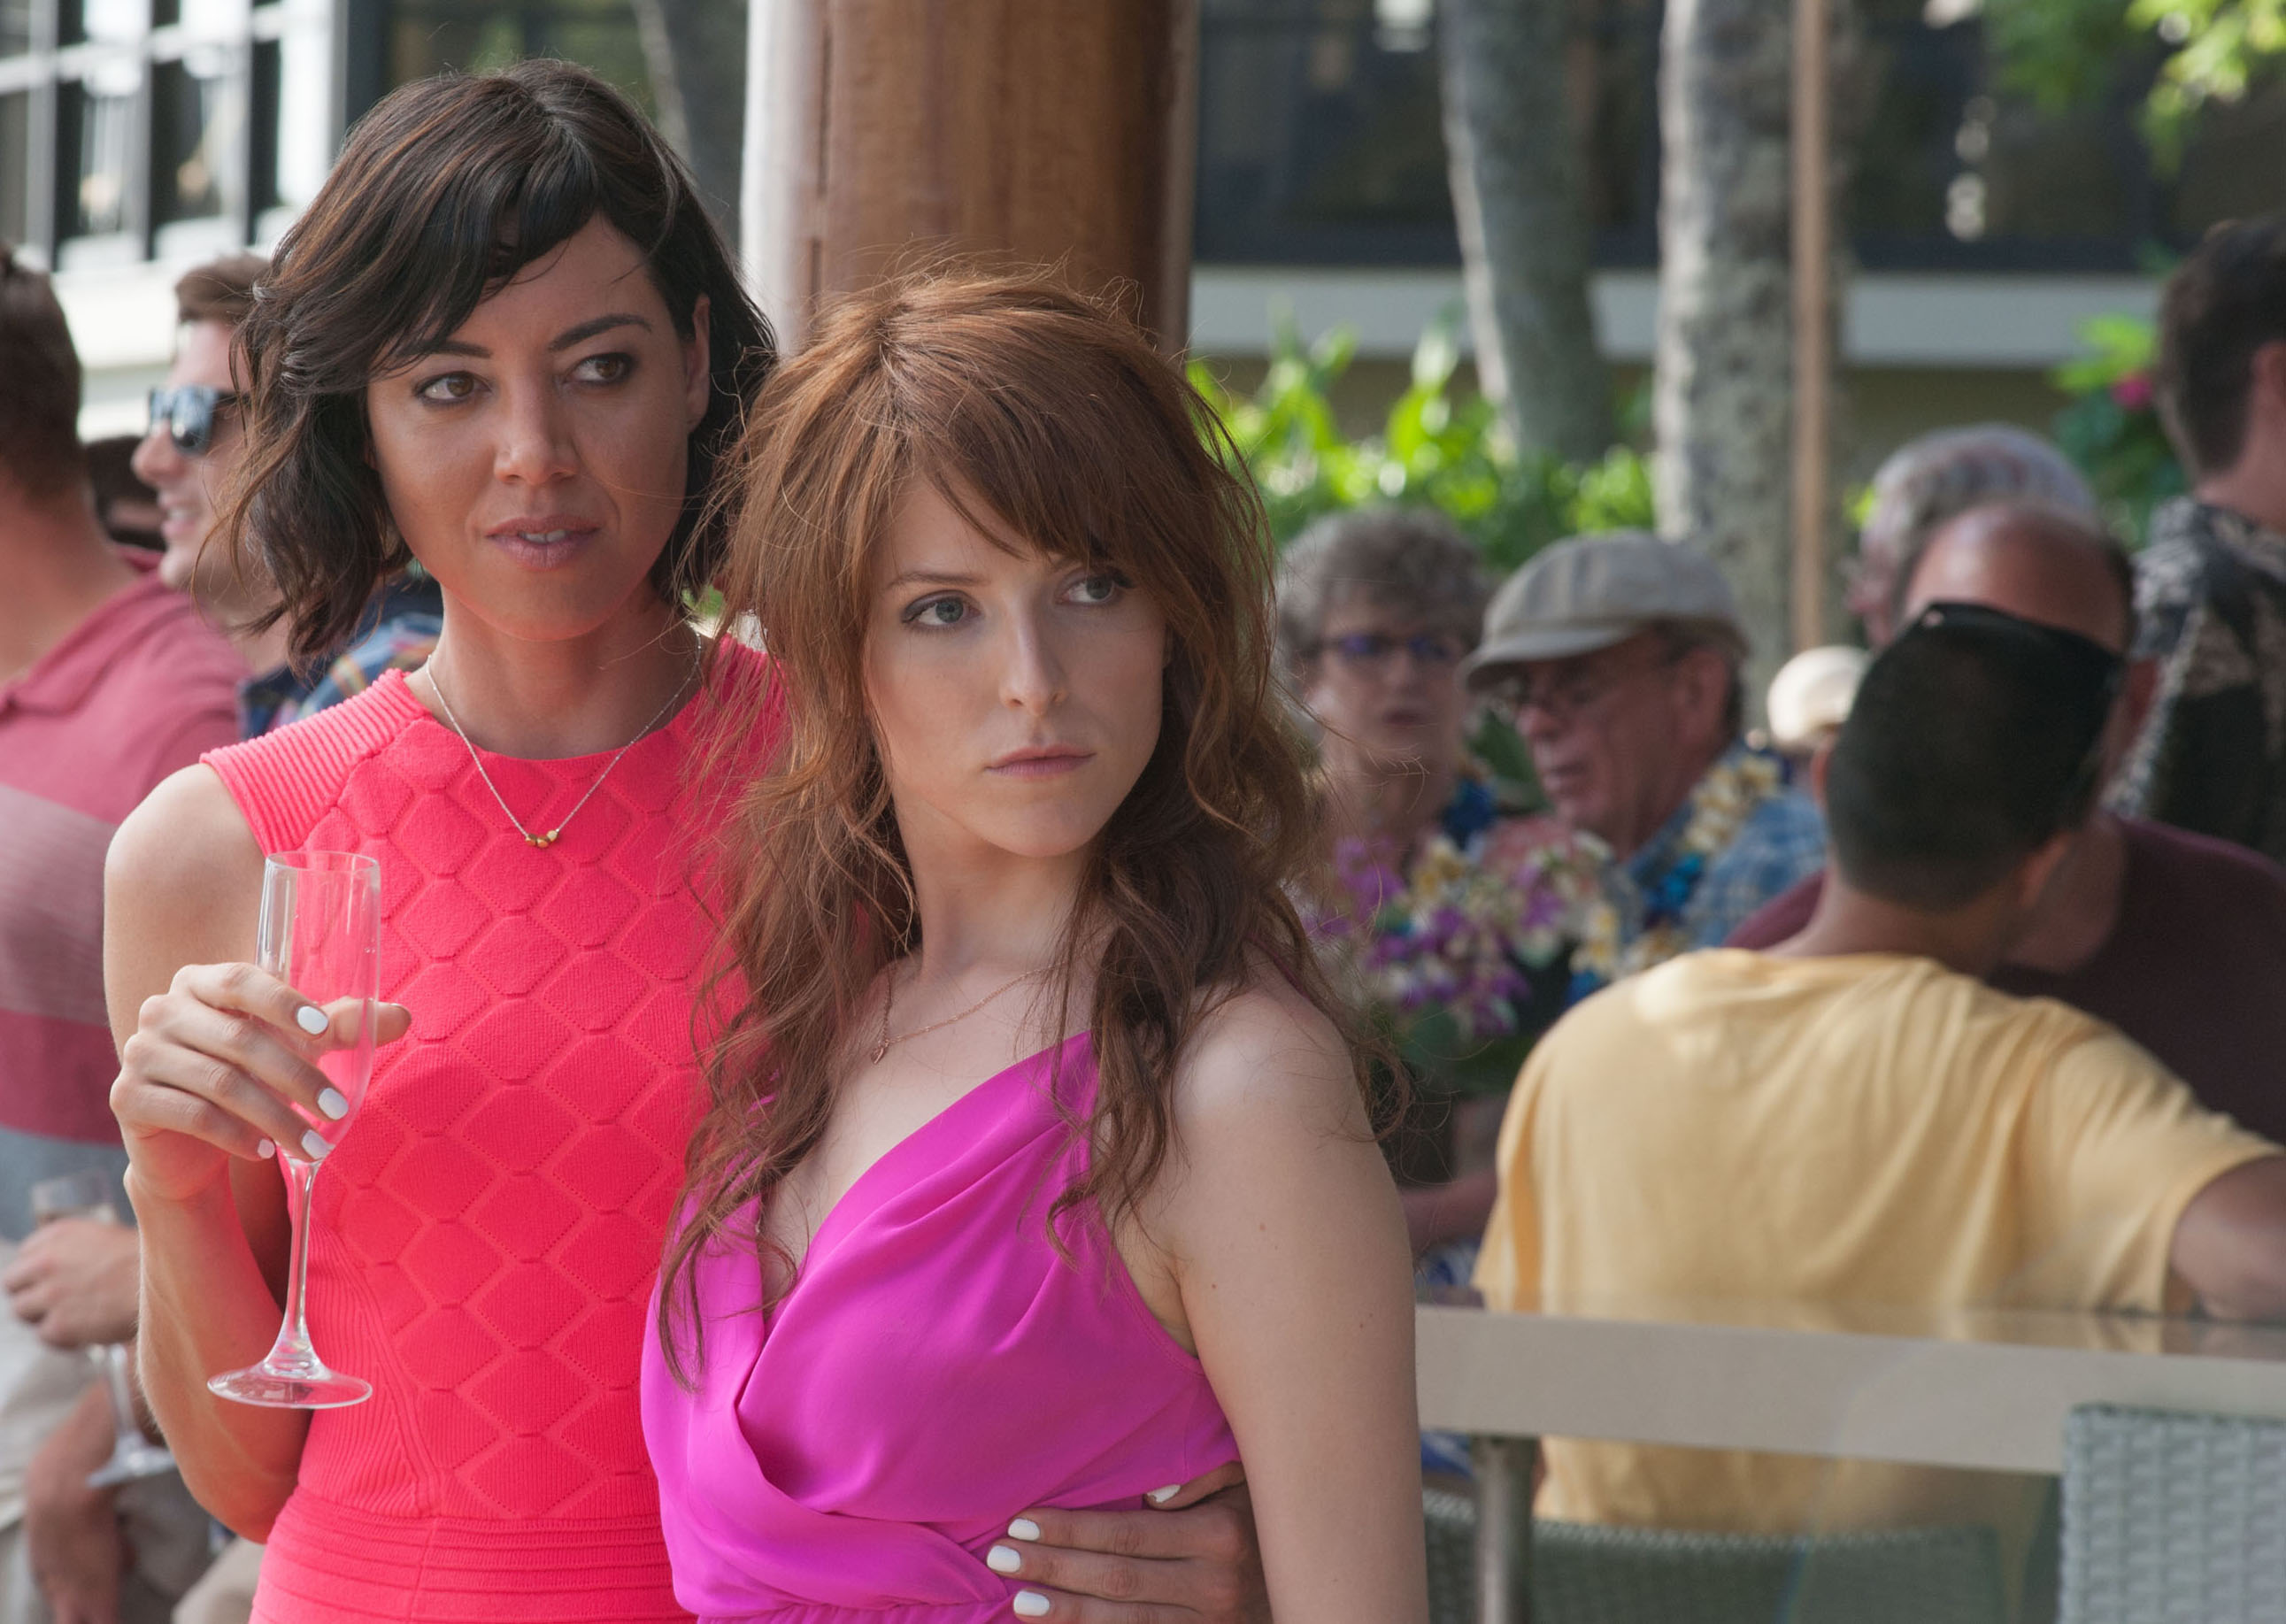 Anna Kendrick and Aubrey Plaza in Mike and Dave Need Wedding Dates (2016)